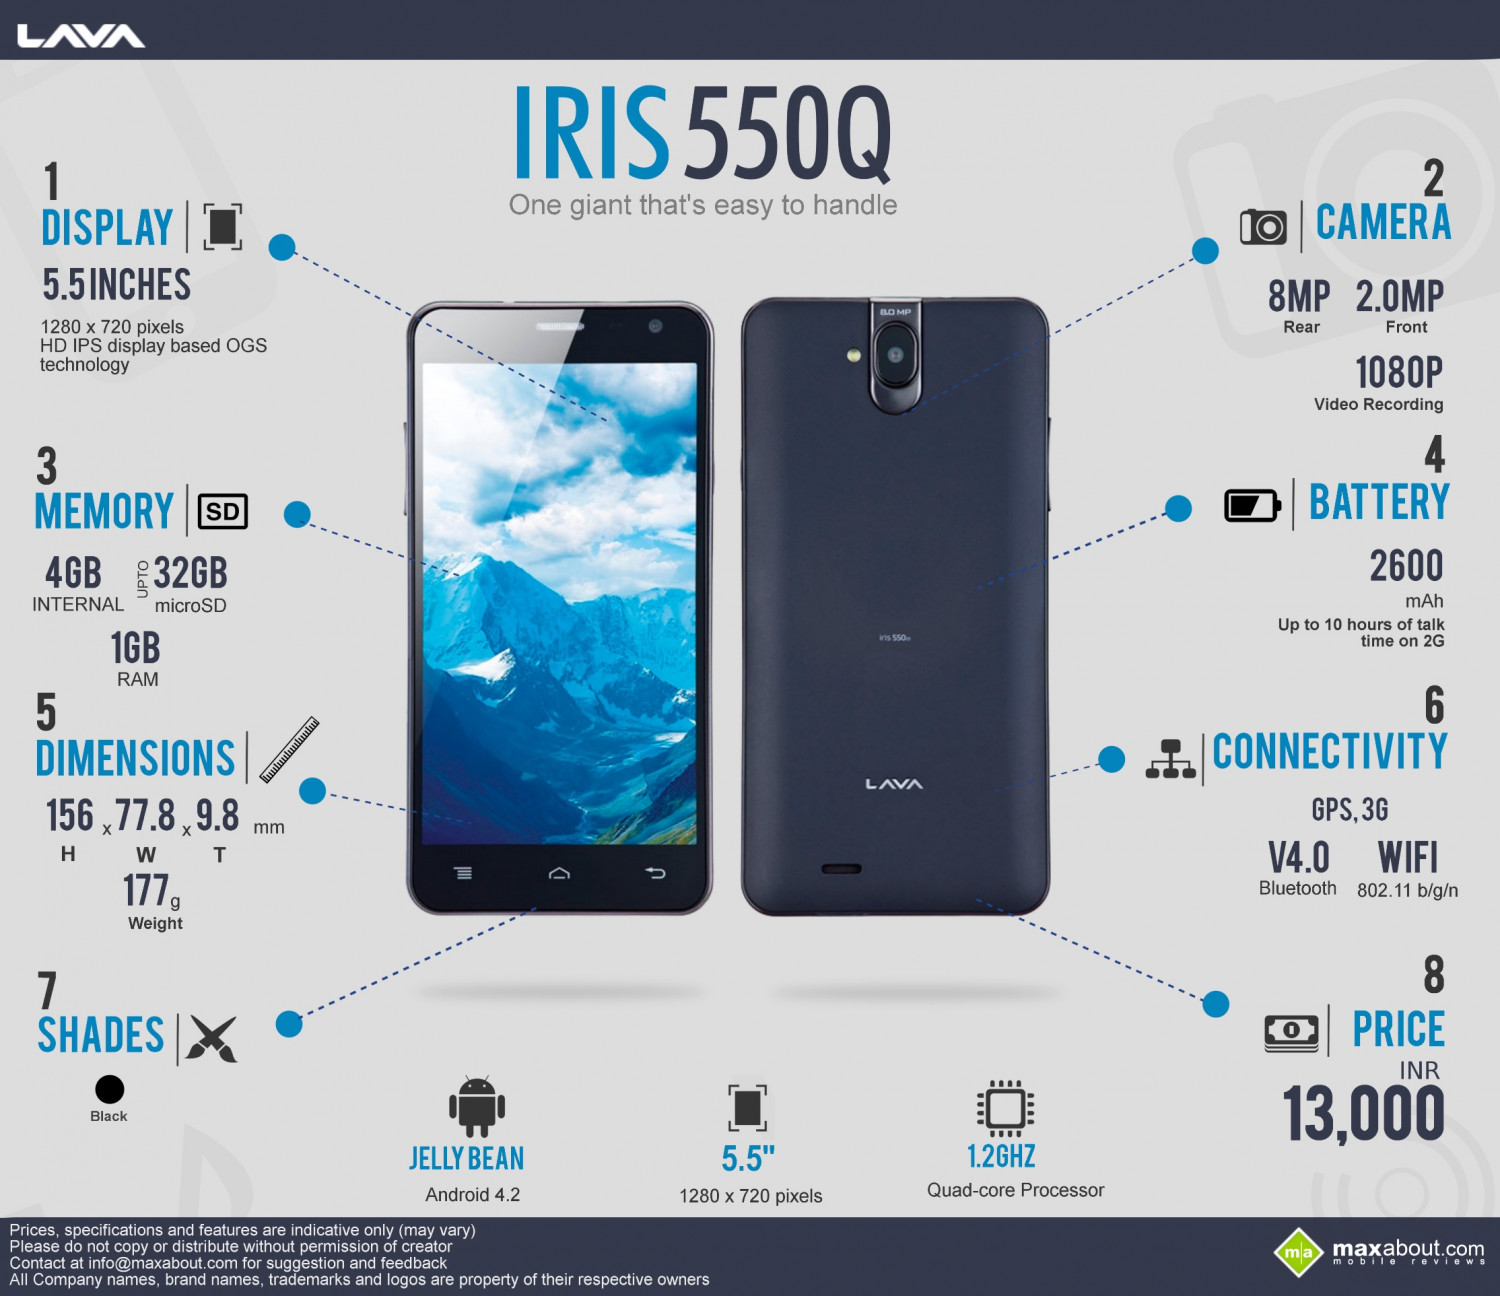 All You Need to Know about the Lava IRIS 550Q Infographic